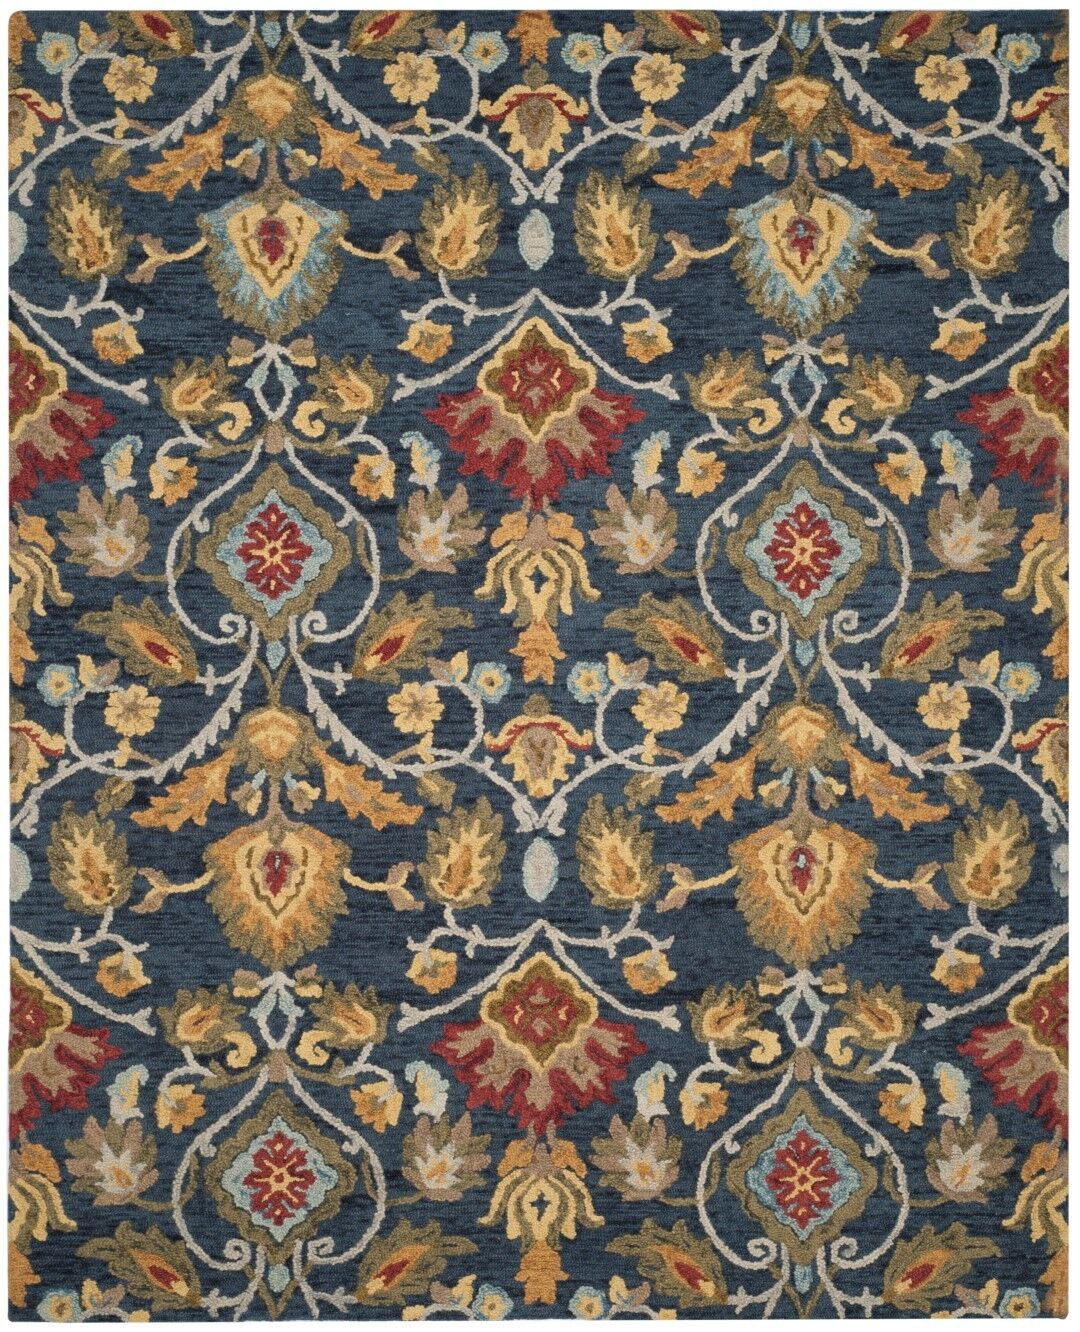 Elford Hand-Tufted Wool Blue/Red/Green Area Rug Rug Size: Rectangle 8' x 10'